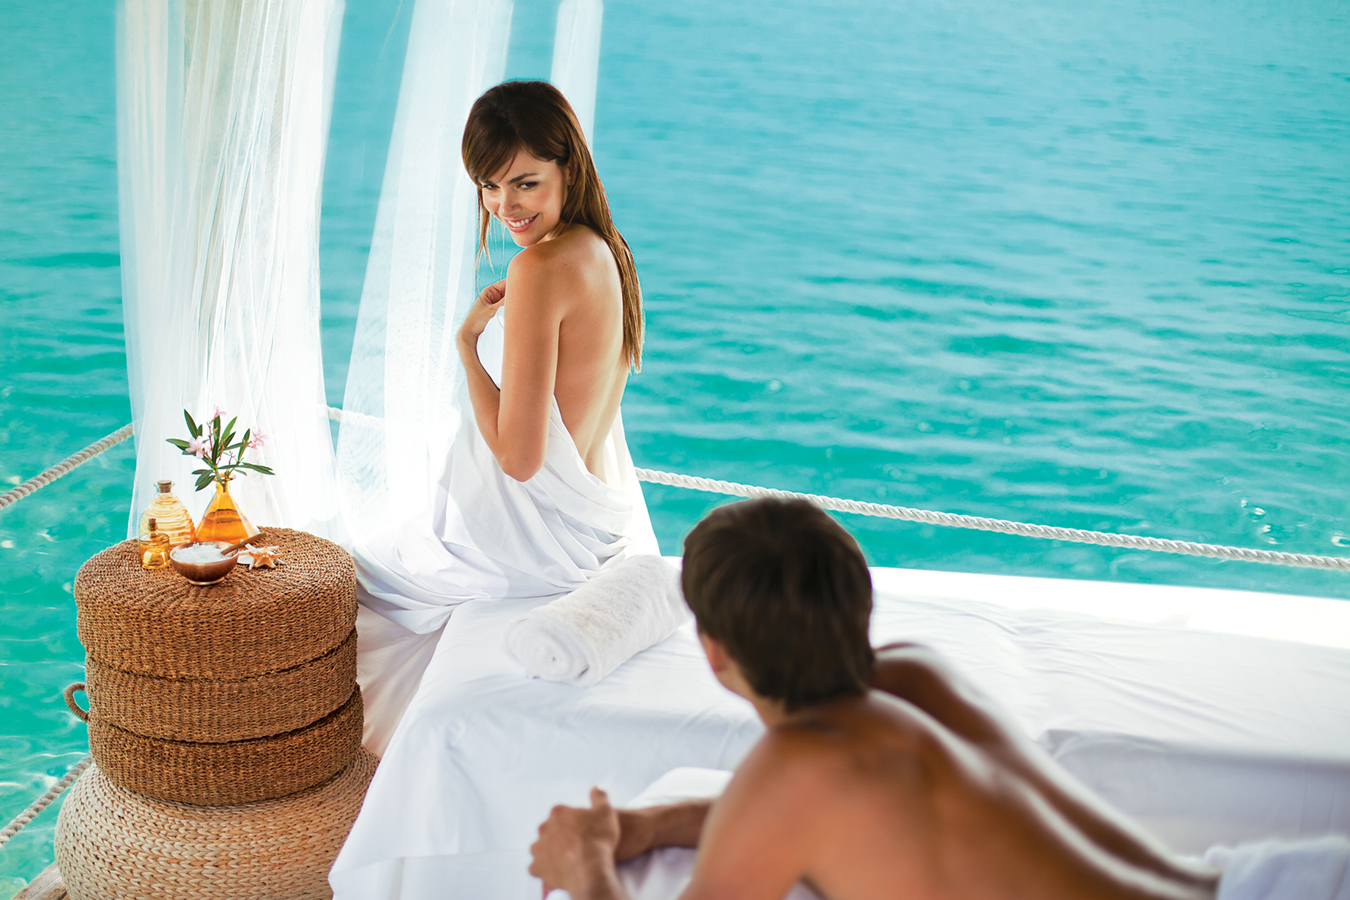 Sandals® Resorts: A Romantic, All-Inclusive Luxury Retreatfor the Mind,  Body, and Spirit - Travel CourierTravel Courier